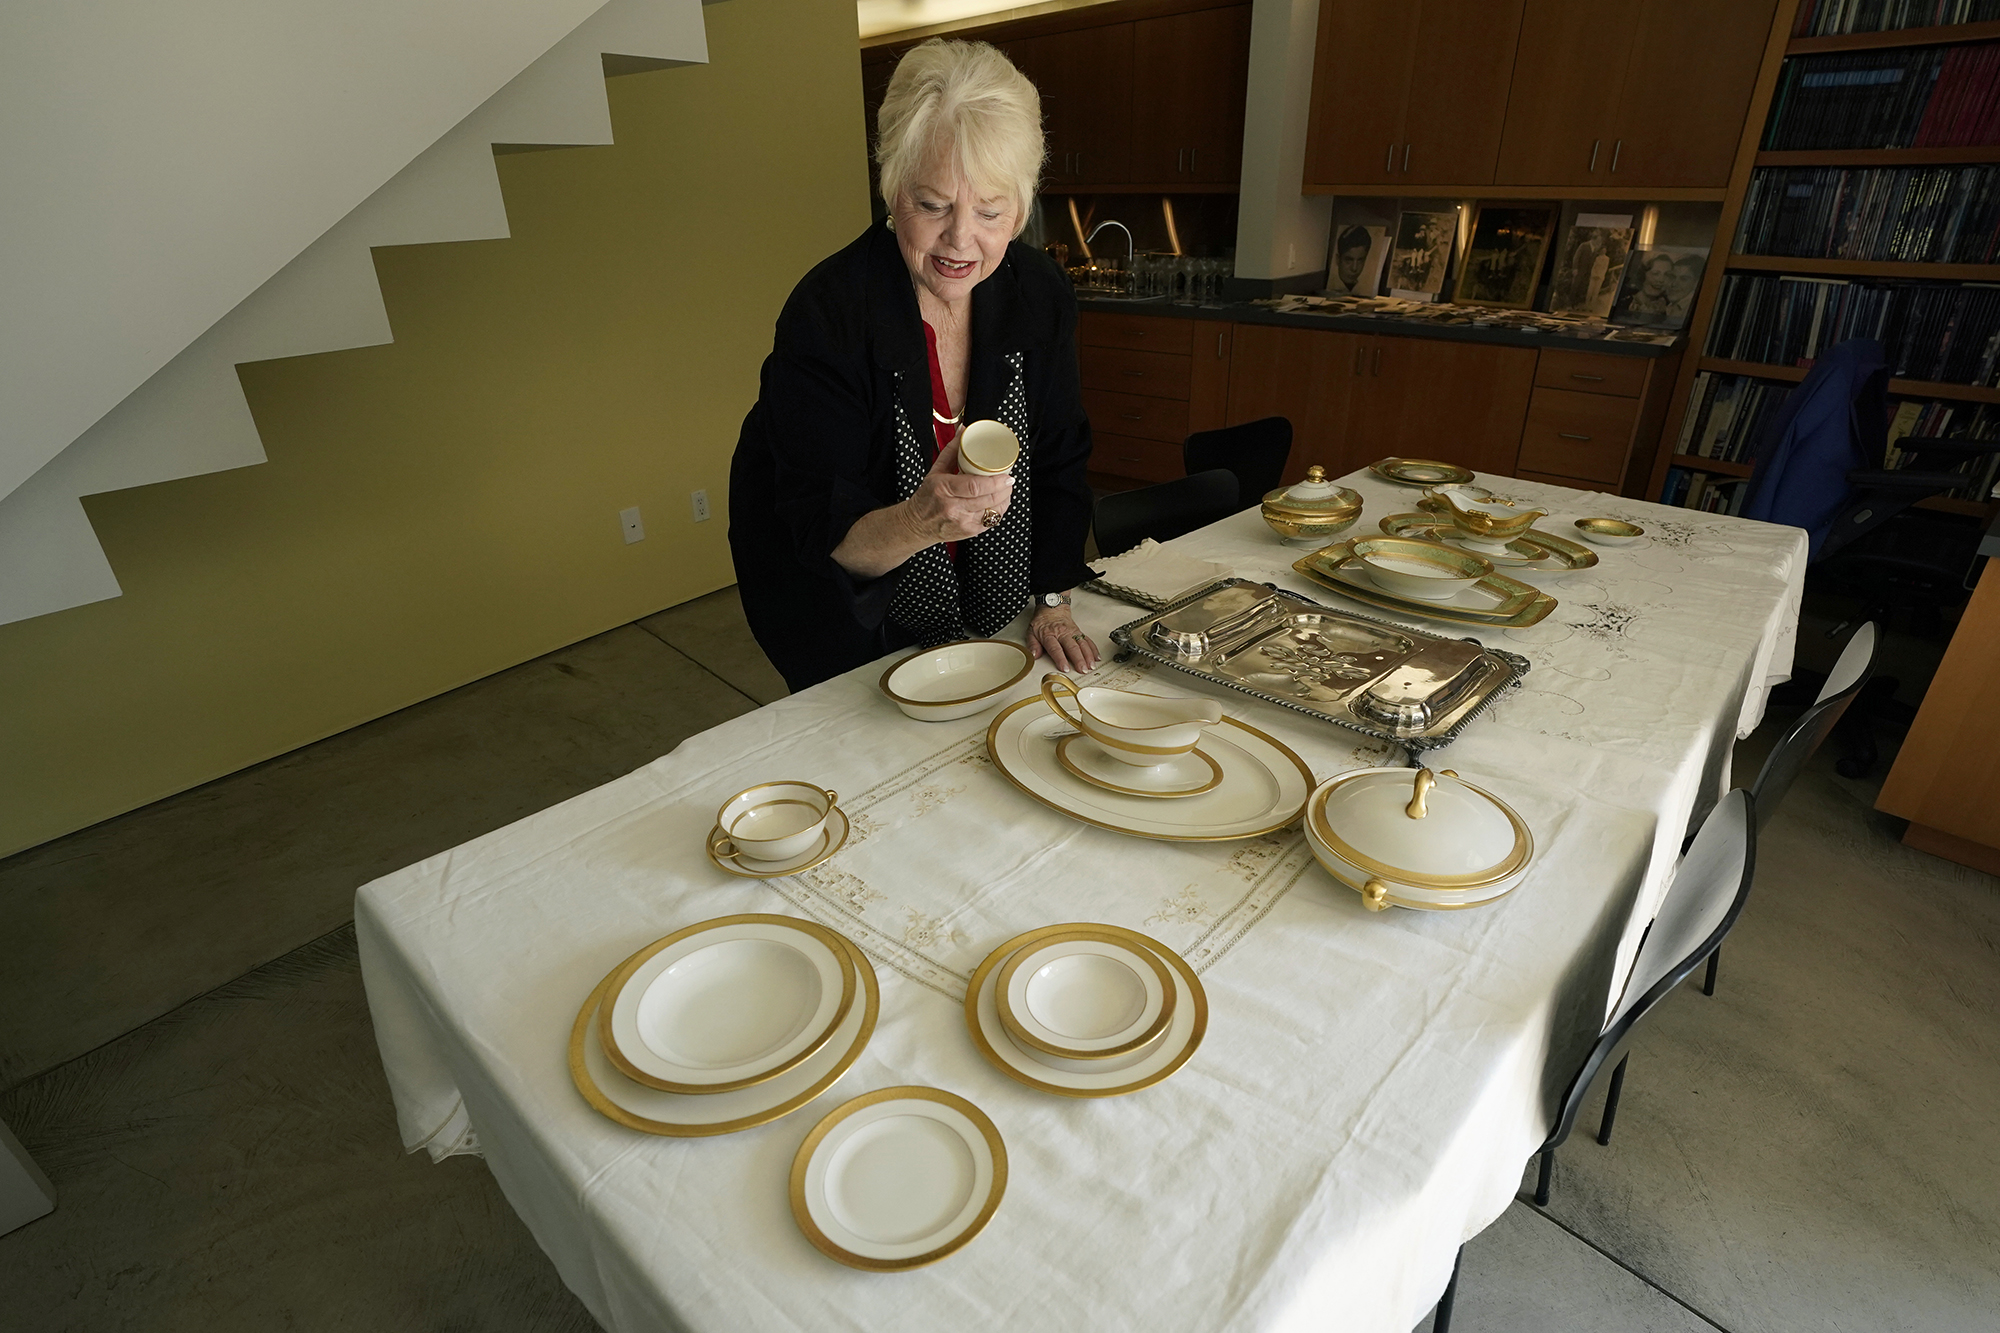 Diane Capone examines a china set that once belonged to her grandparents, Mae and Al Capone.